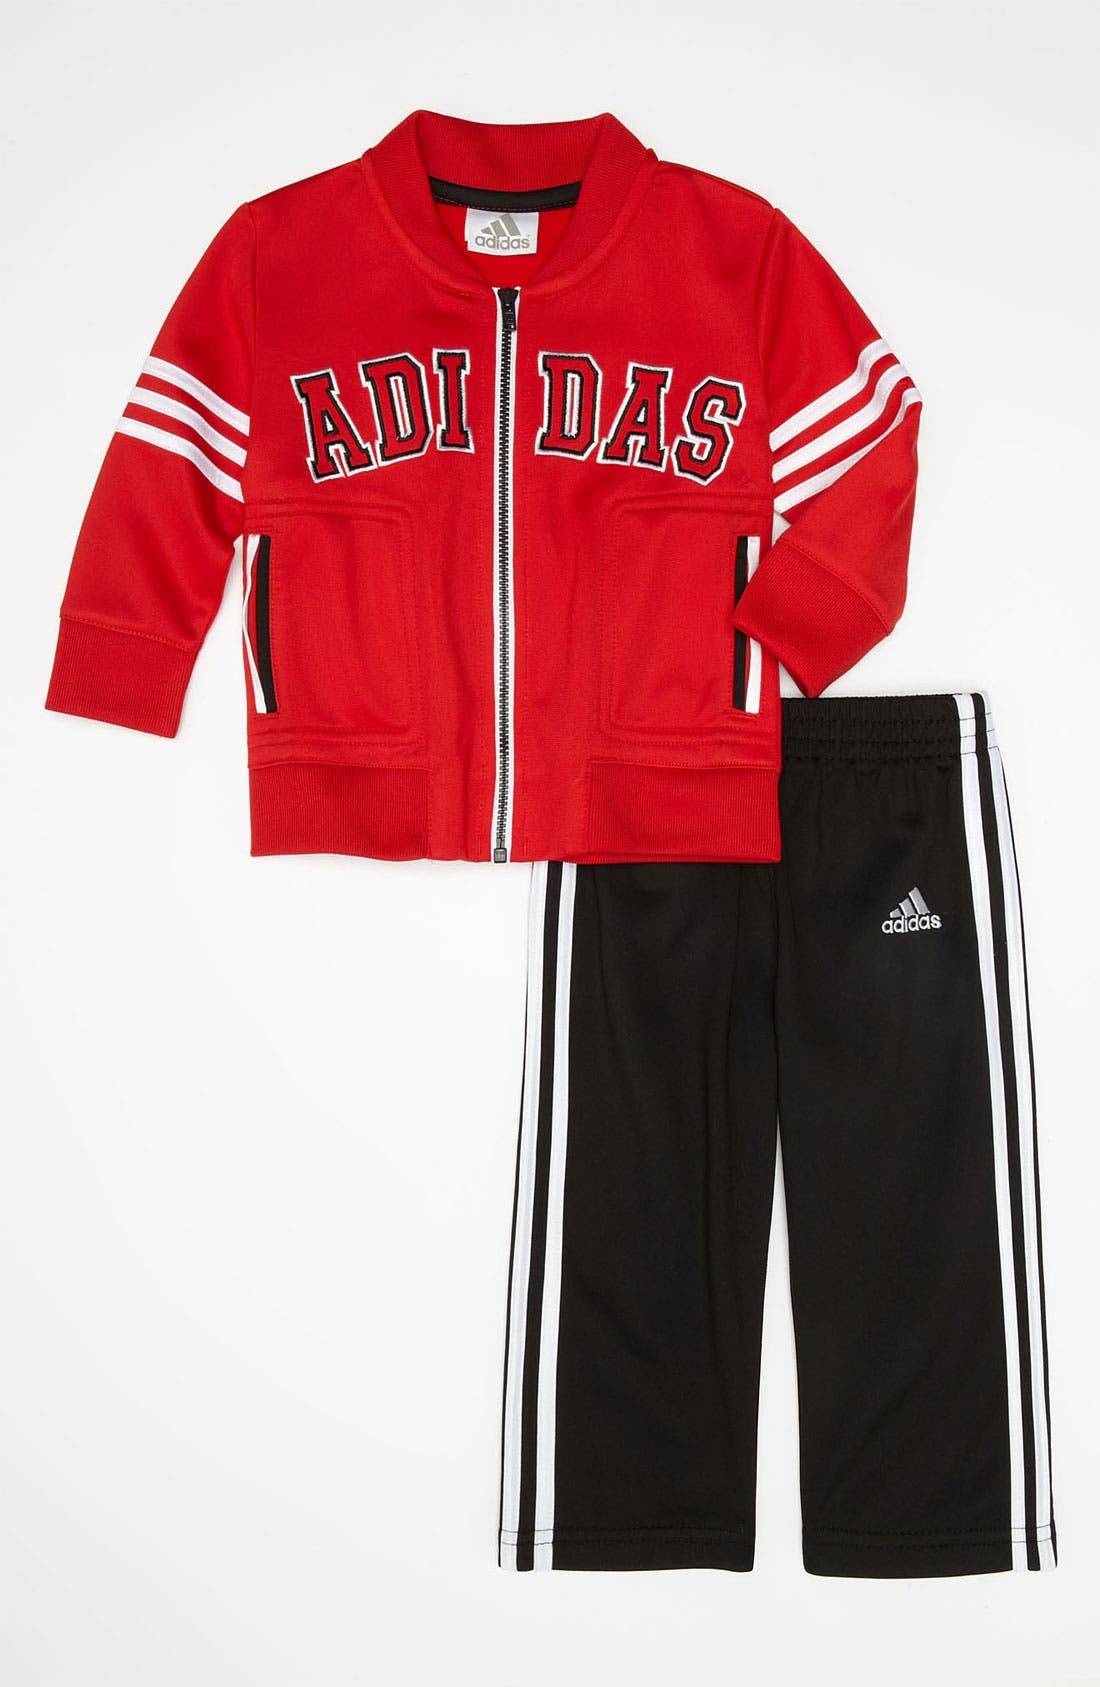 Main Image - adidas 'Team' Jacket & Pants (Toddler)